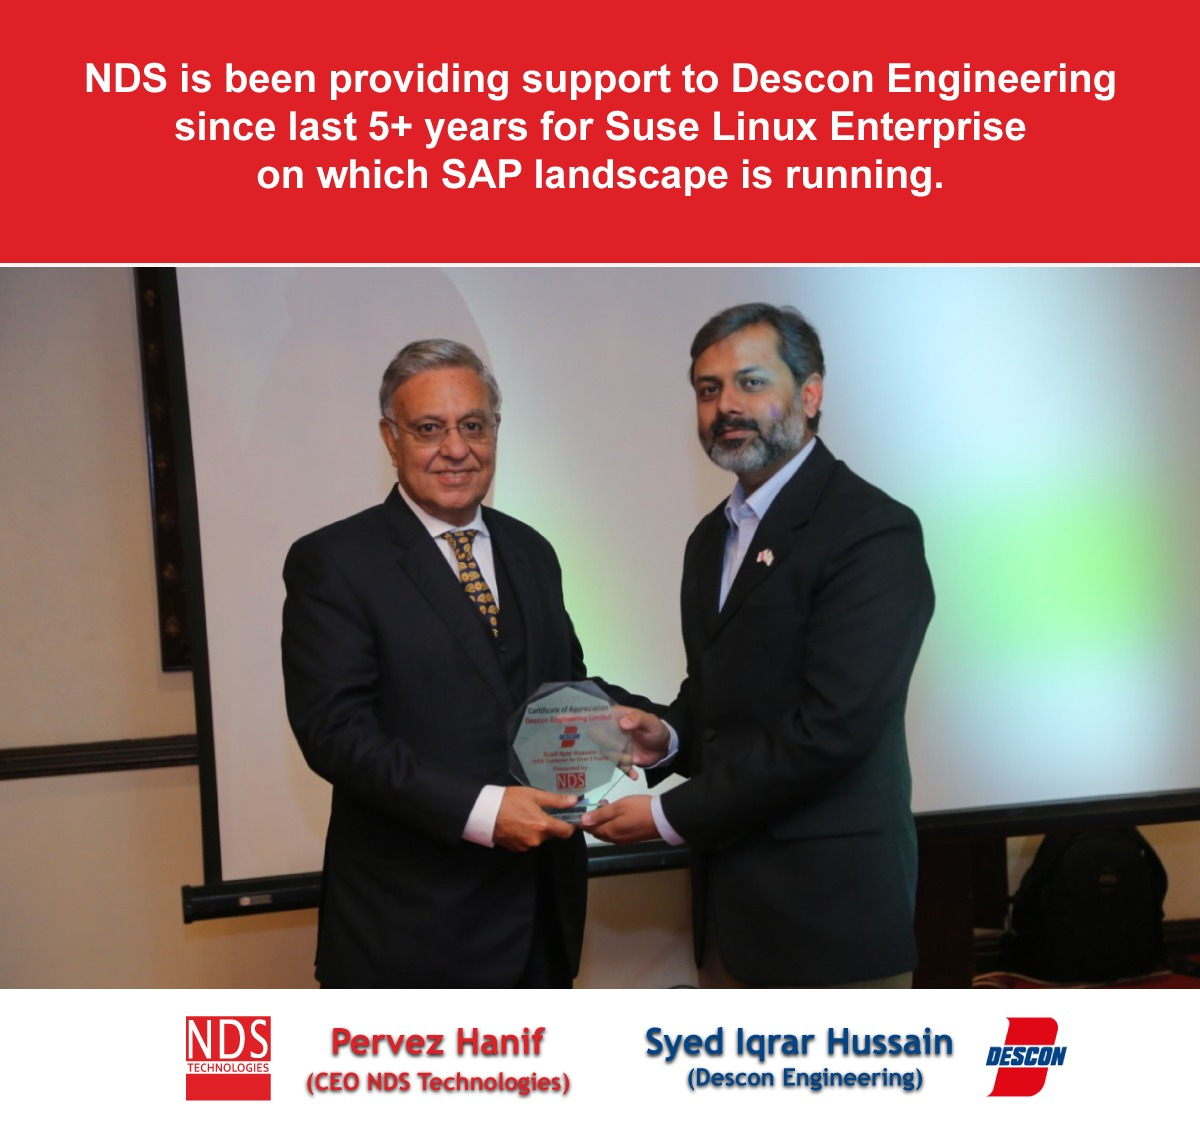 NDS is been providing support to Descon Engineering.